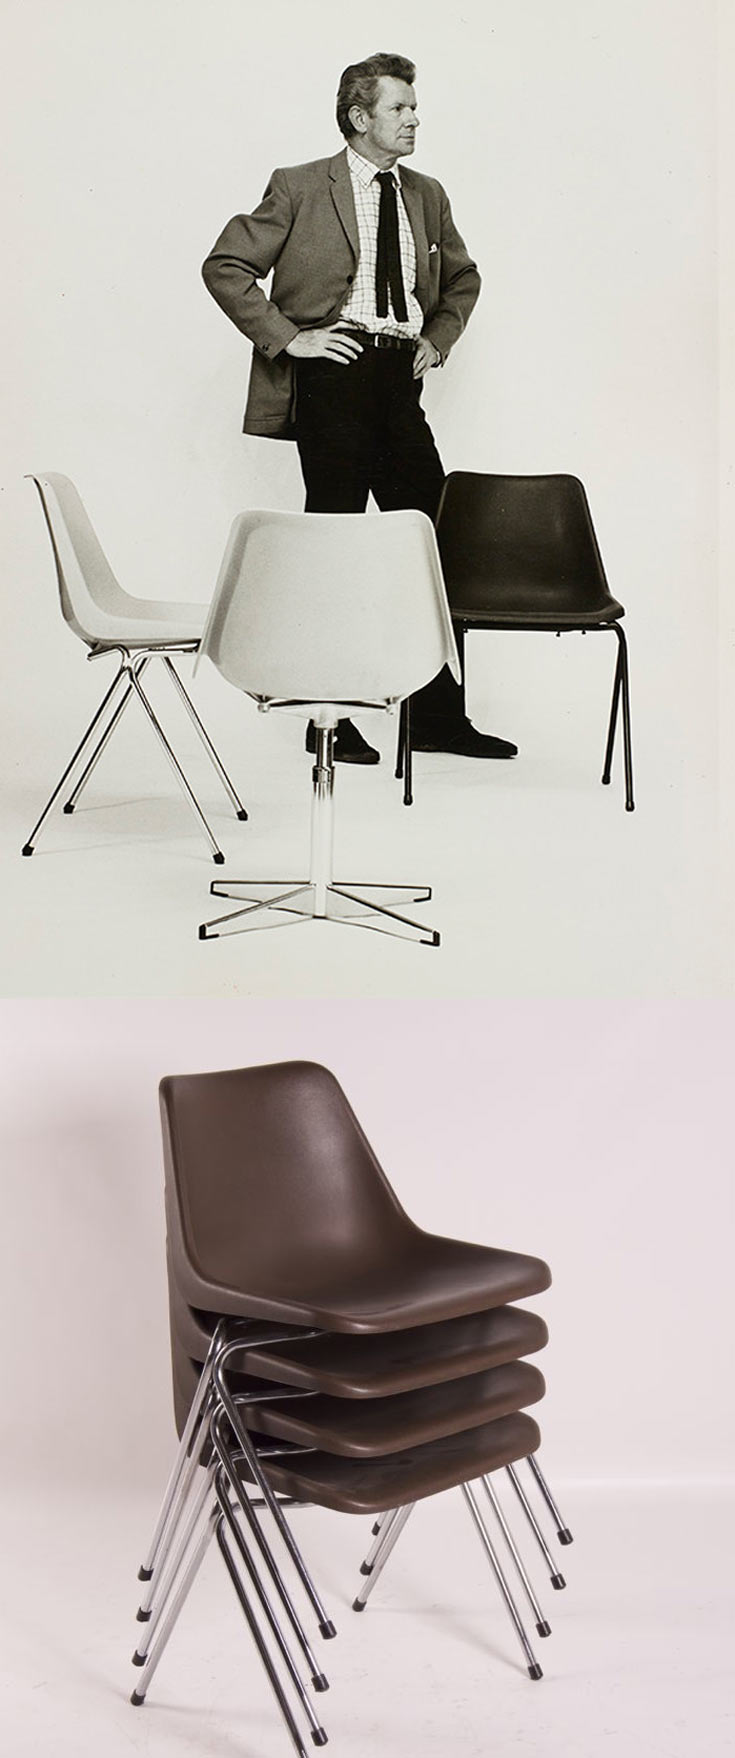 06-polypropylene-chair